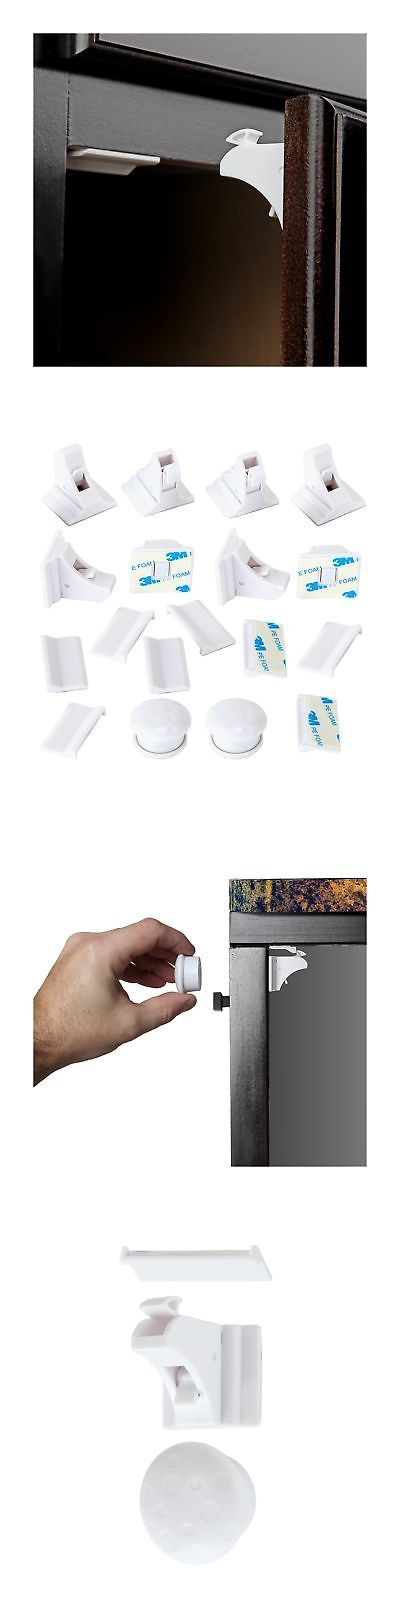 Baby Proofing 184339: Jambini Magnetic Cabinet Locks | Child Safety Locks - No Tools Or Screws Requ... -> BUY IT NOW ONLY: $46.77 on eBay!